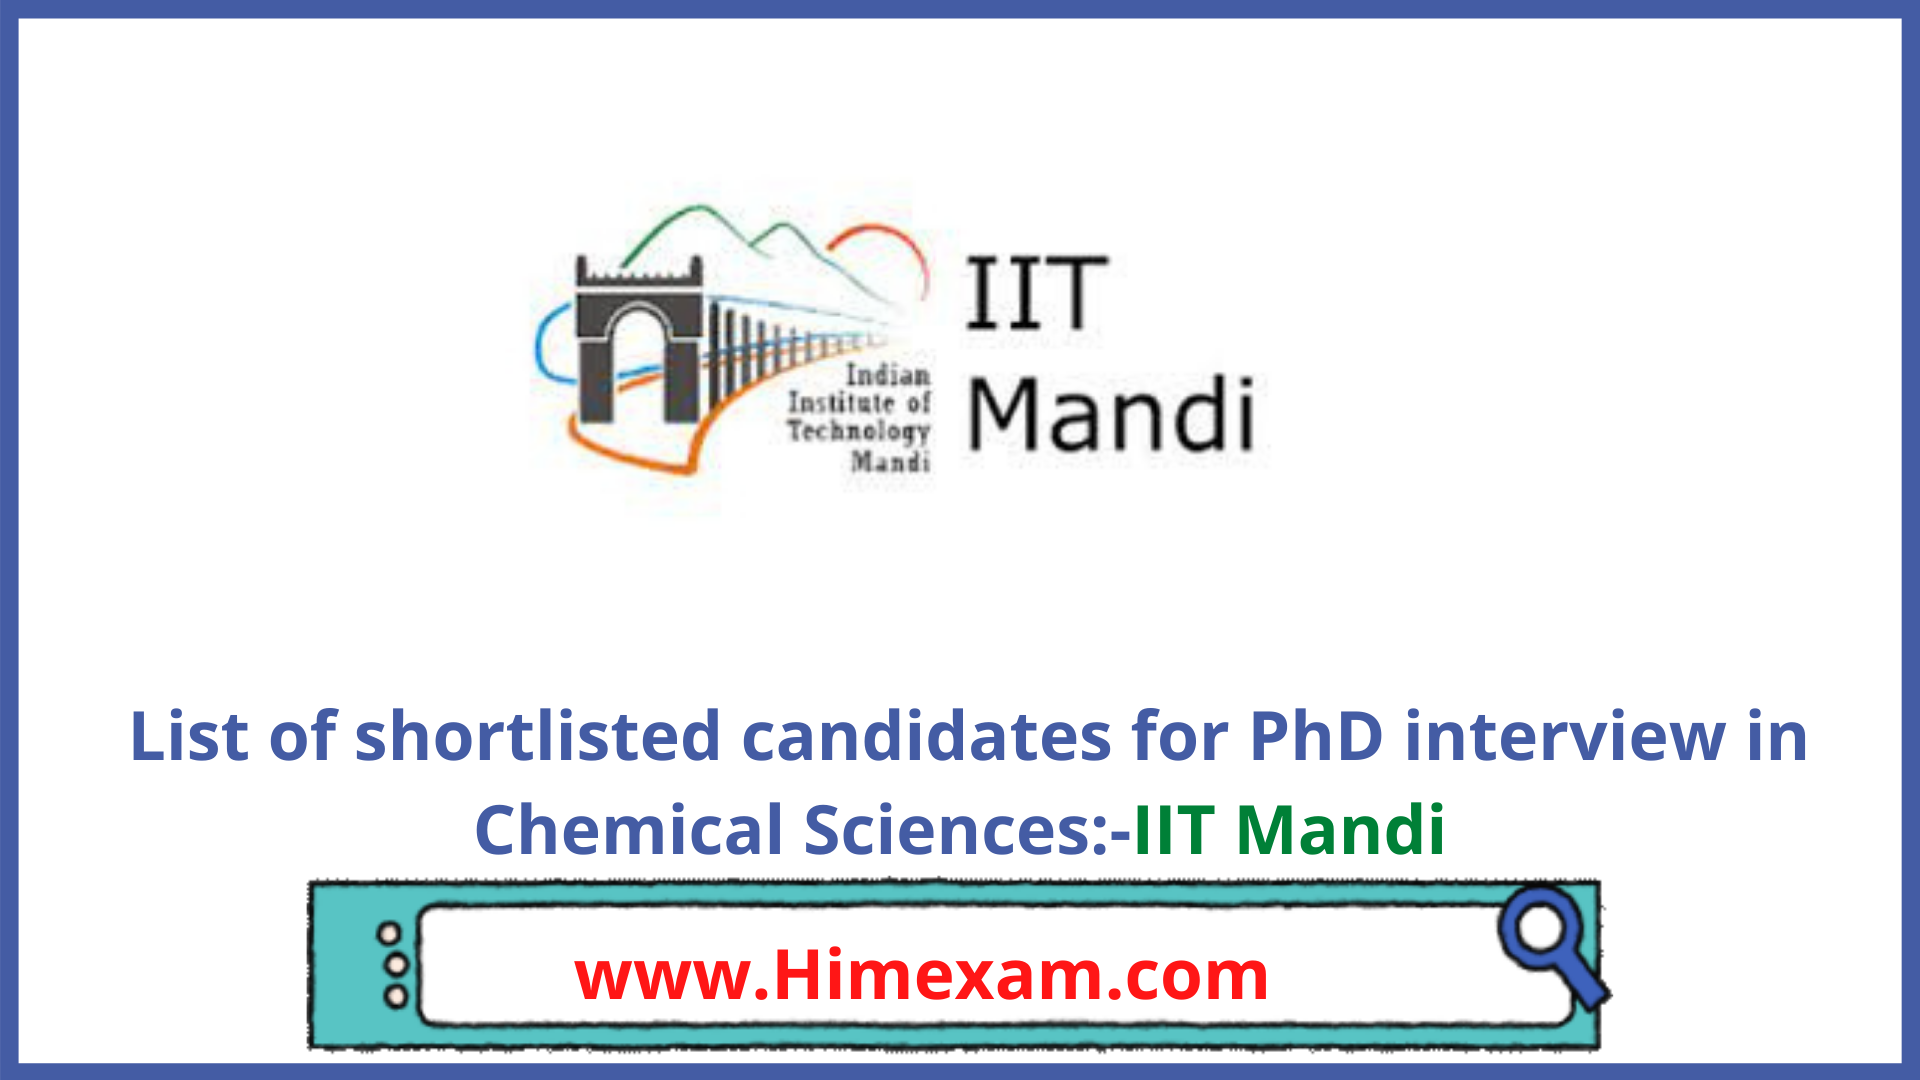 List of shortlisted candidates for PhD interview in Chemical Sciences:-IIT Mandi